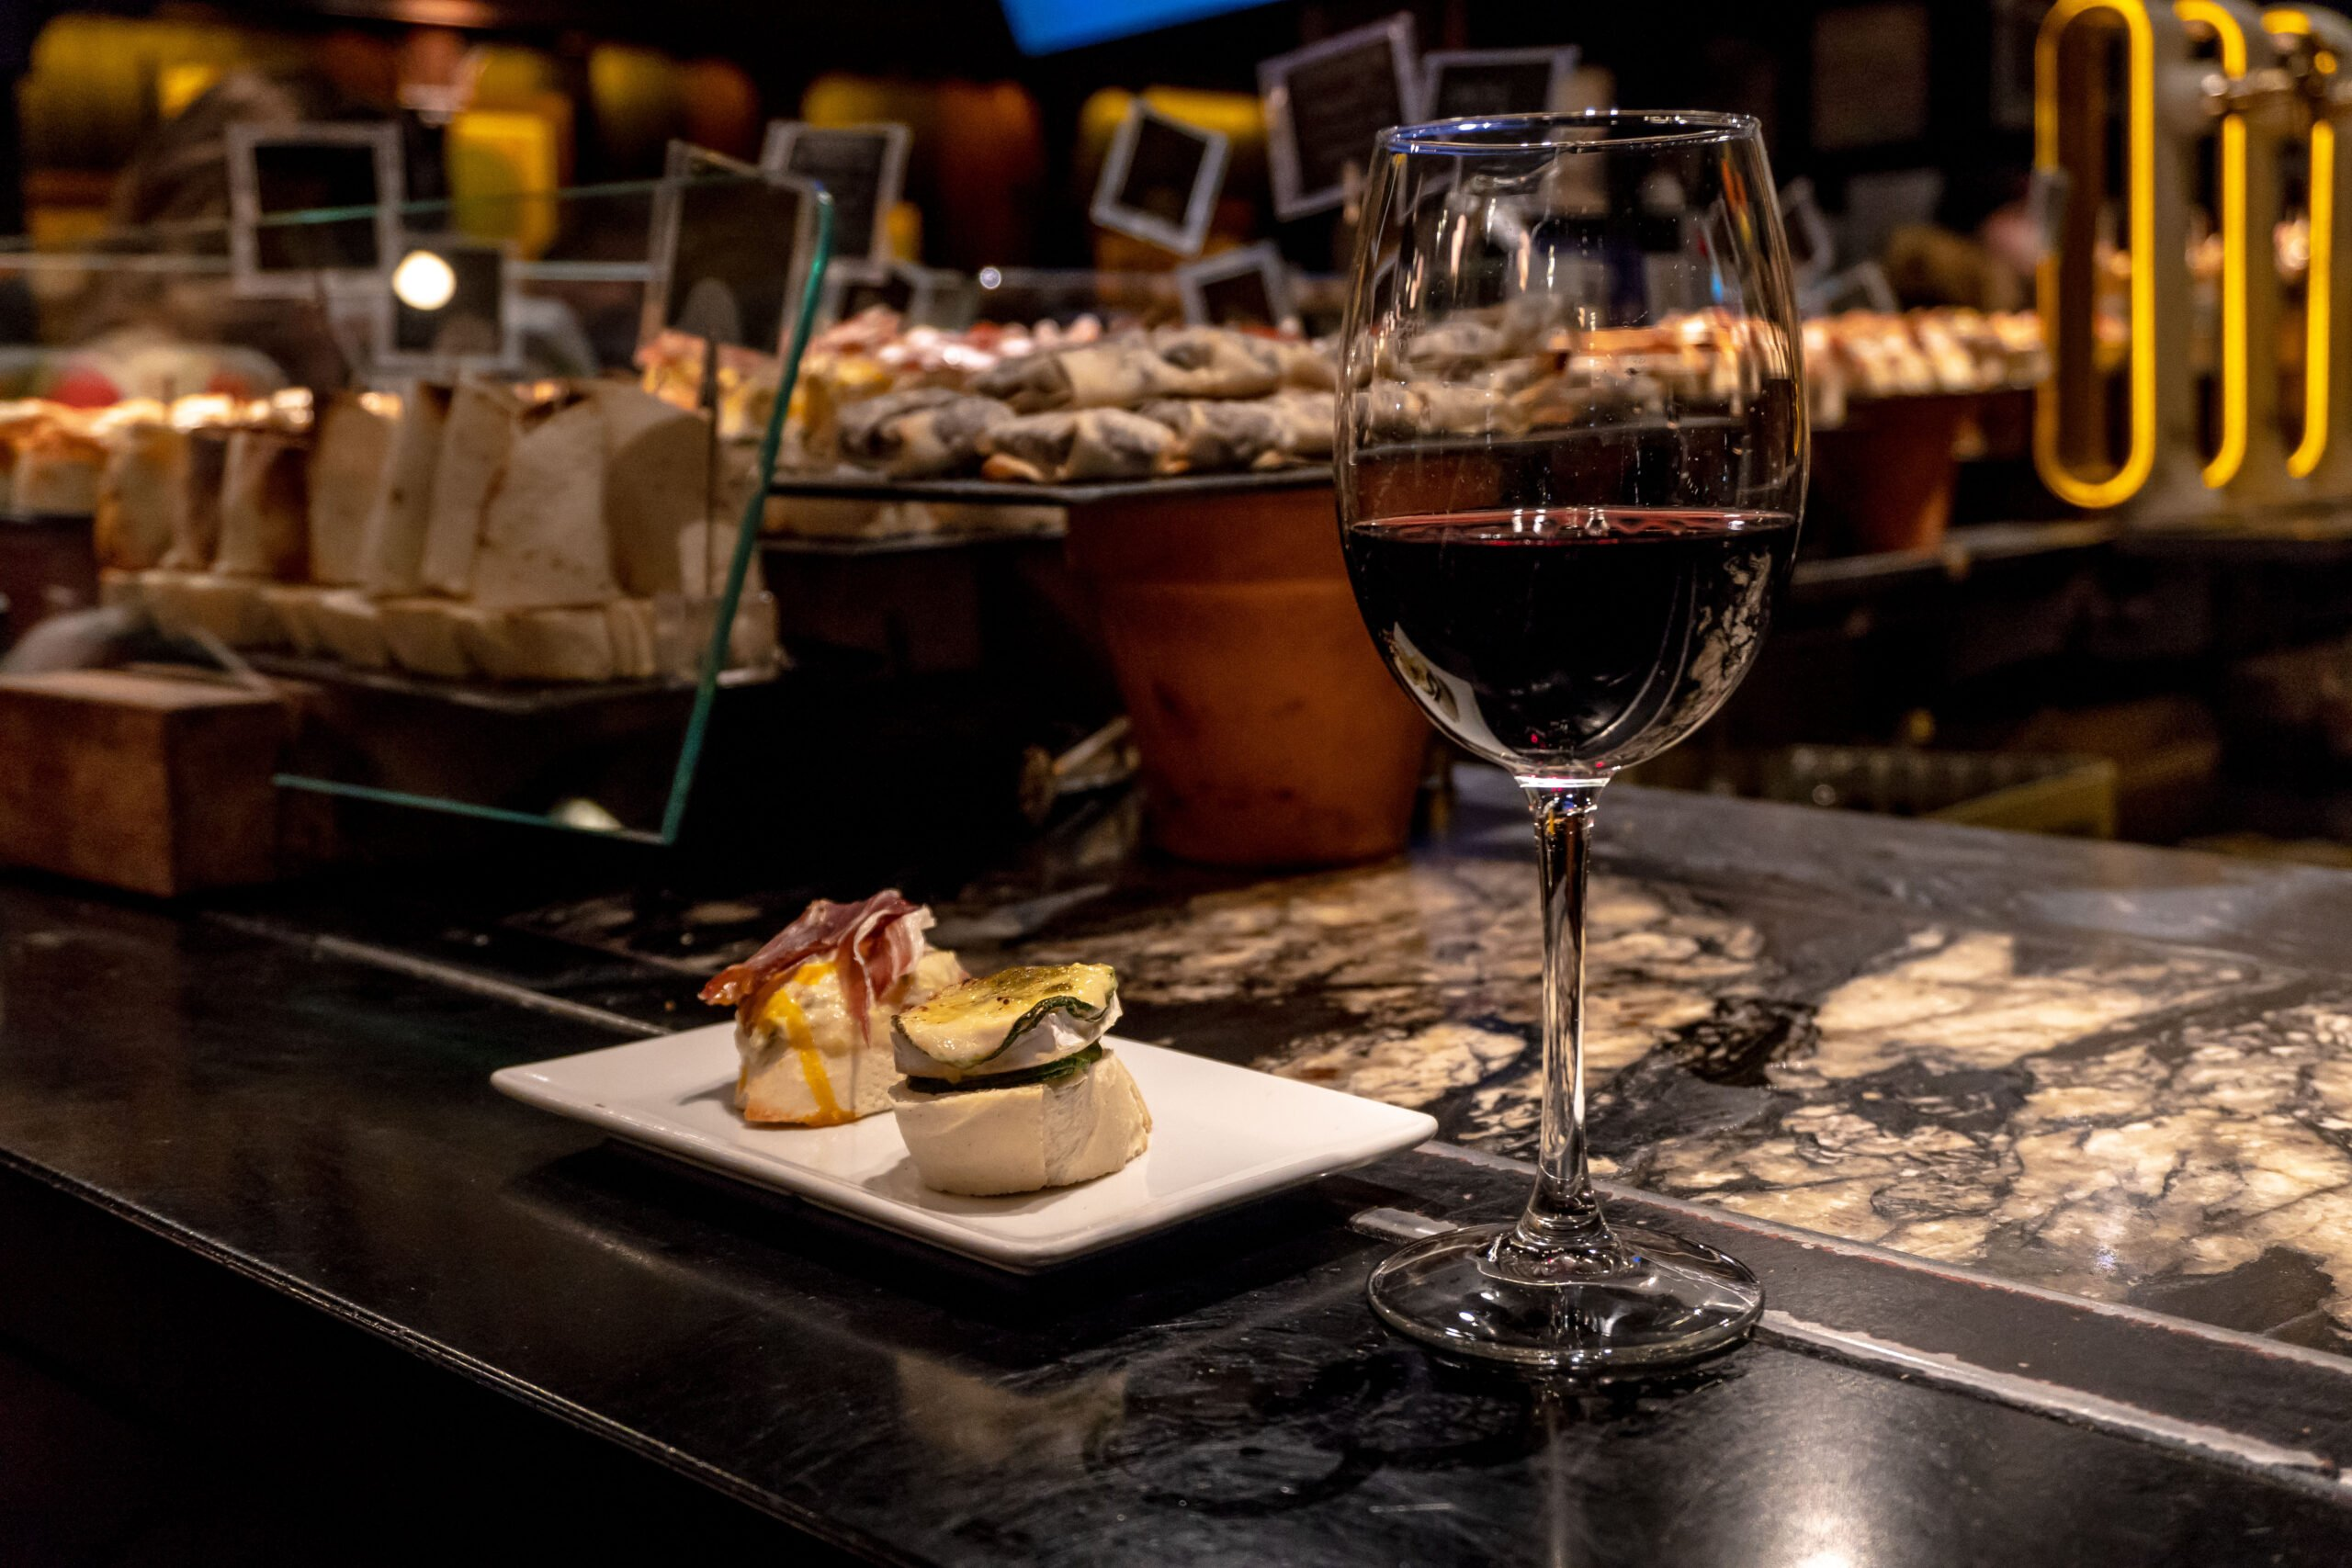 Enjoy A Glass Of Wine To Your Pintxos On The Bilbao Old City & Food Tasting Tour